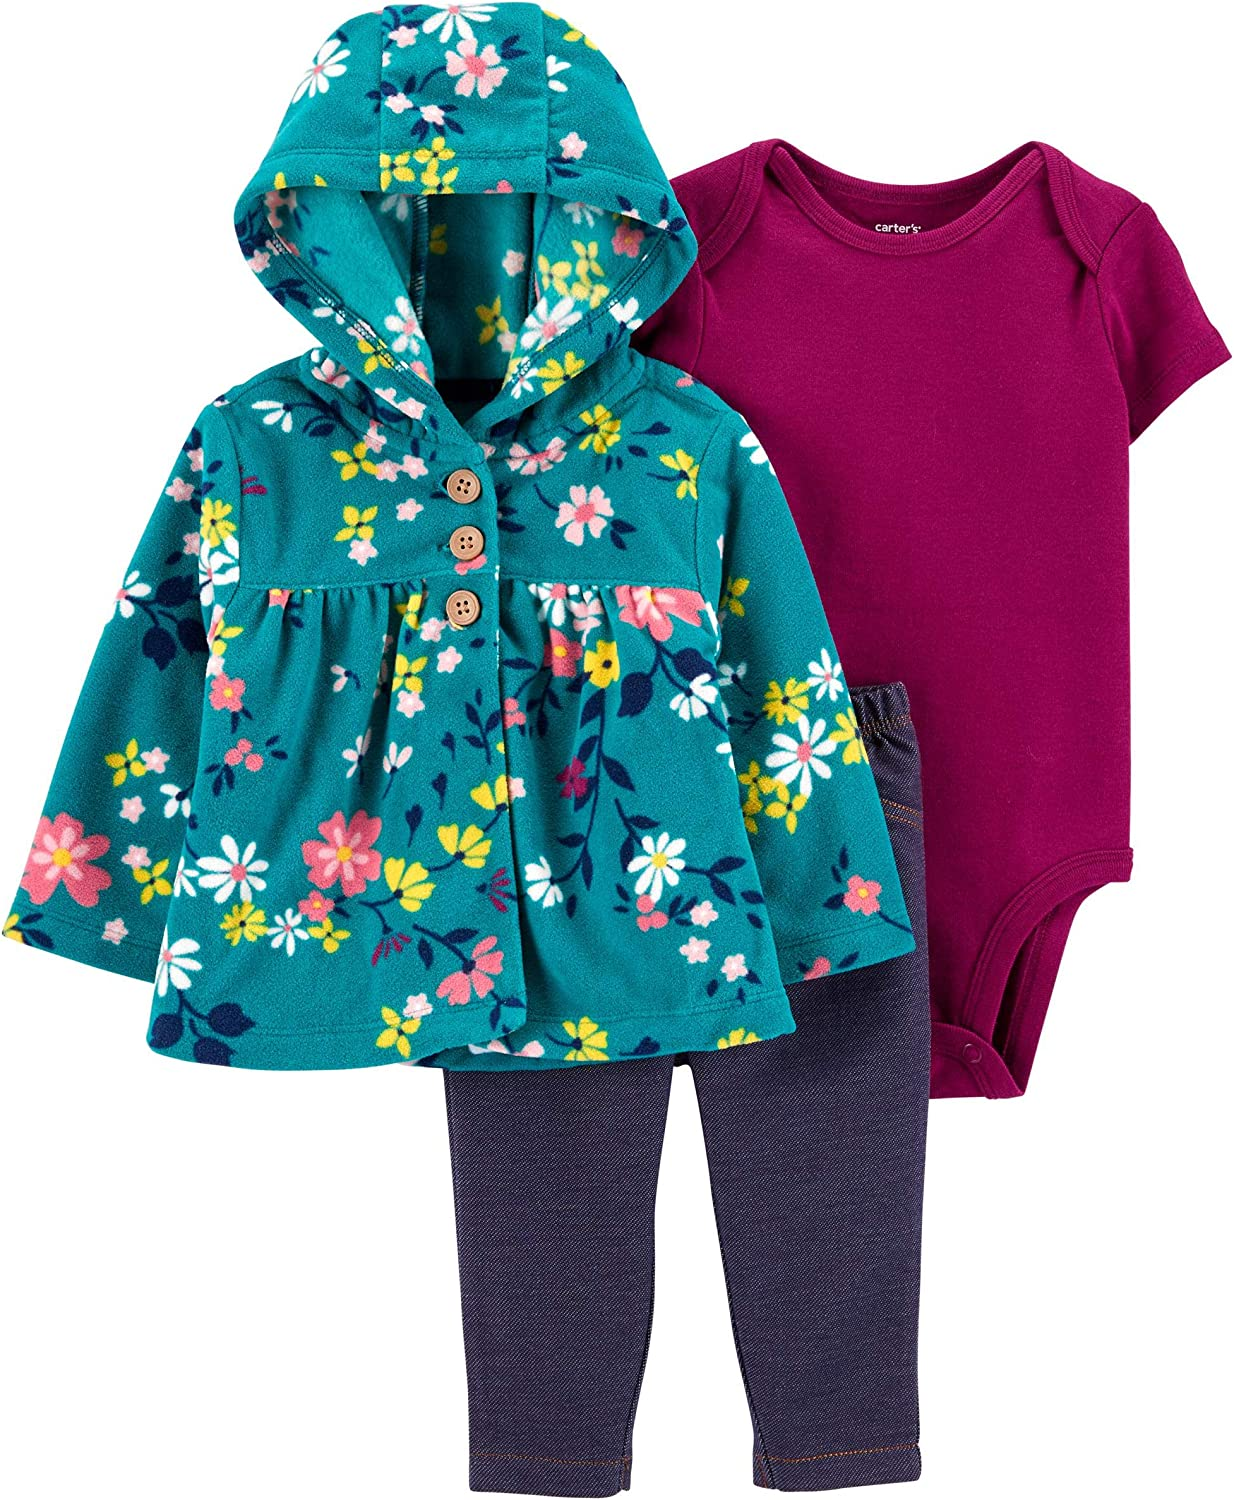 Clearance SALE! Limited time! Carter's Baby Girls' discount Sets 121g771 Cardigan